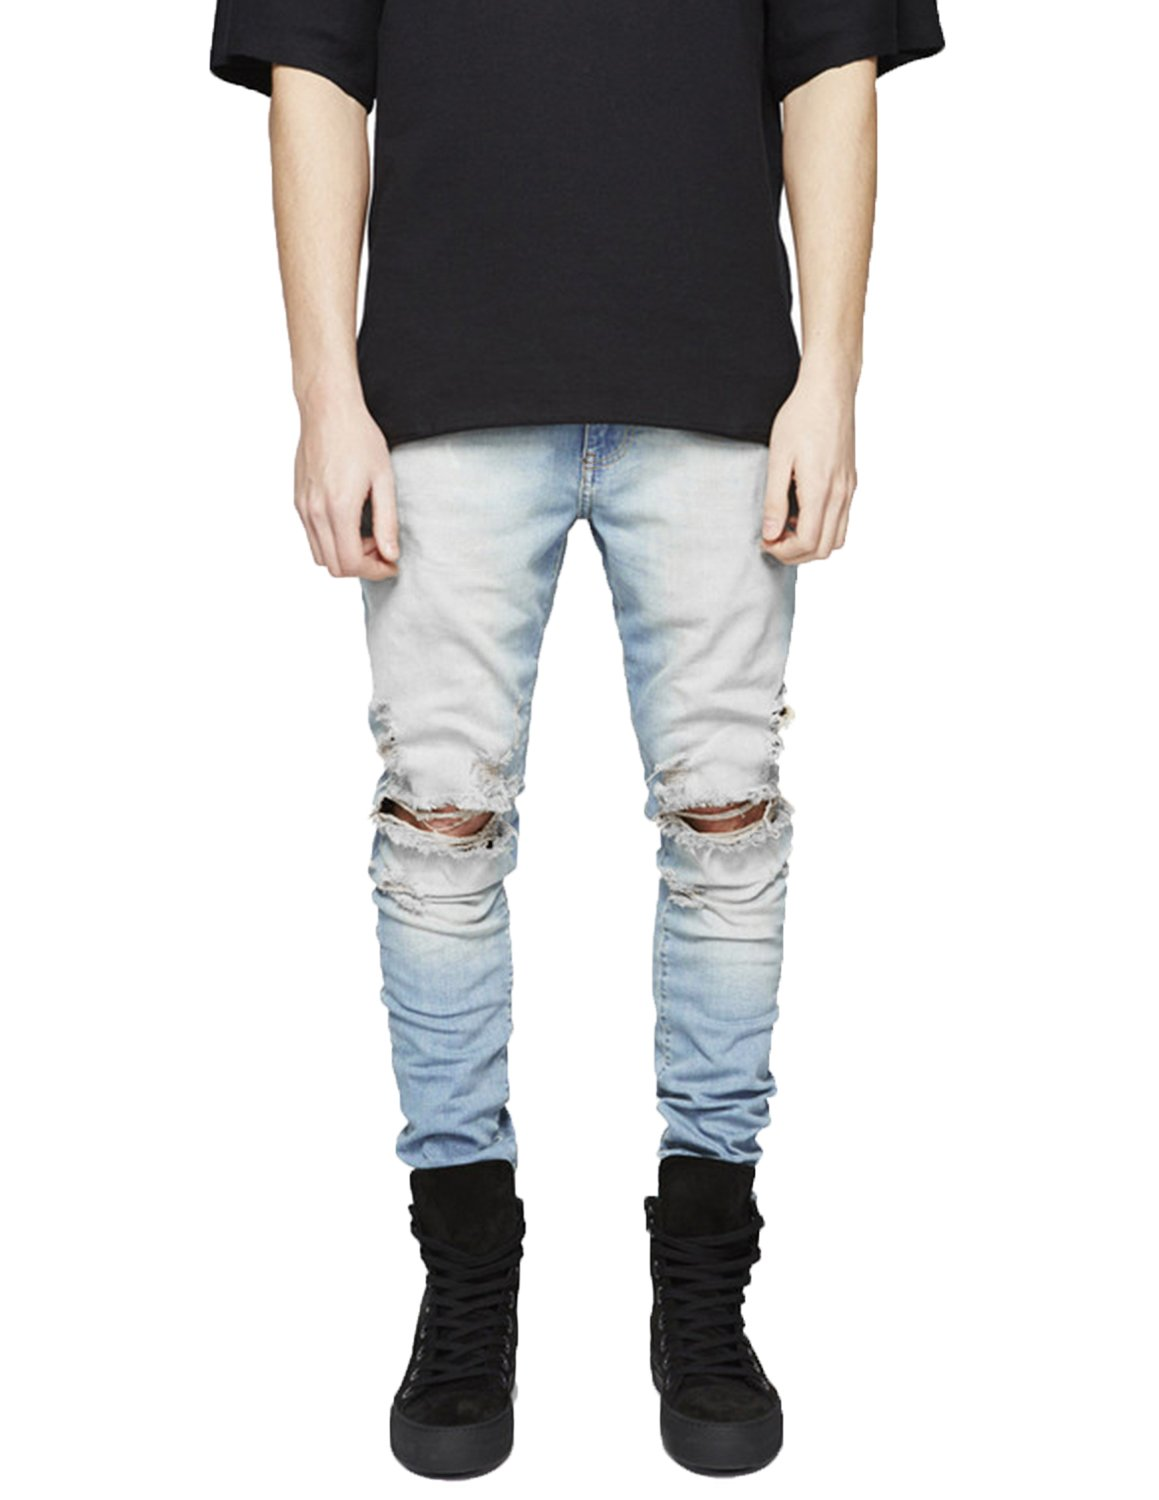 Pishon Men's Distressed Jeans Washed Stretchy Tapered Leg with Holes Ripped Jeans